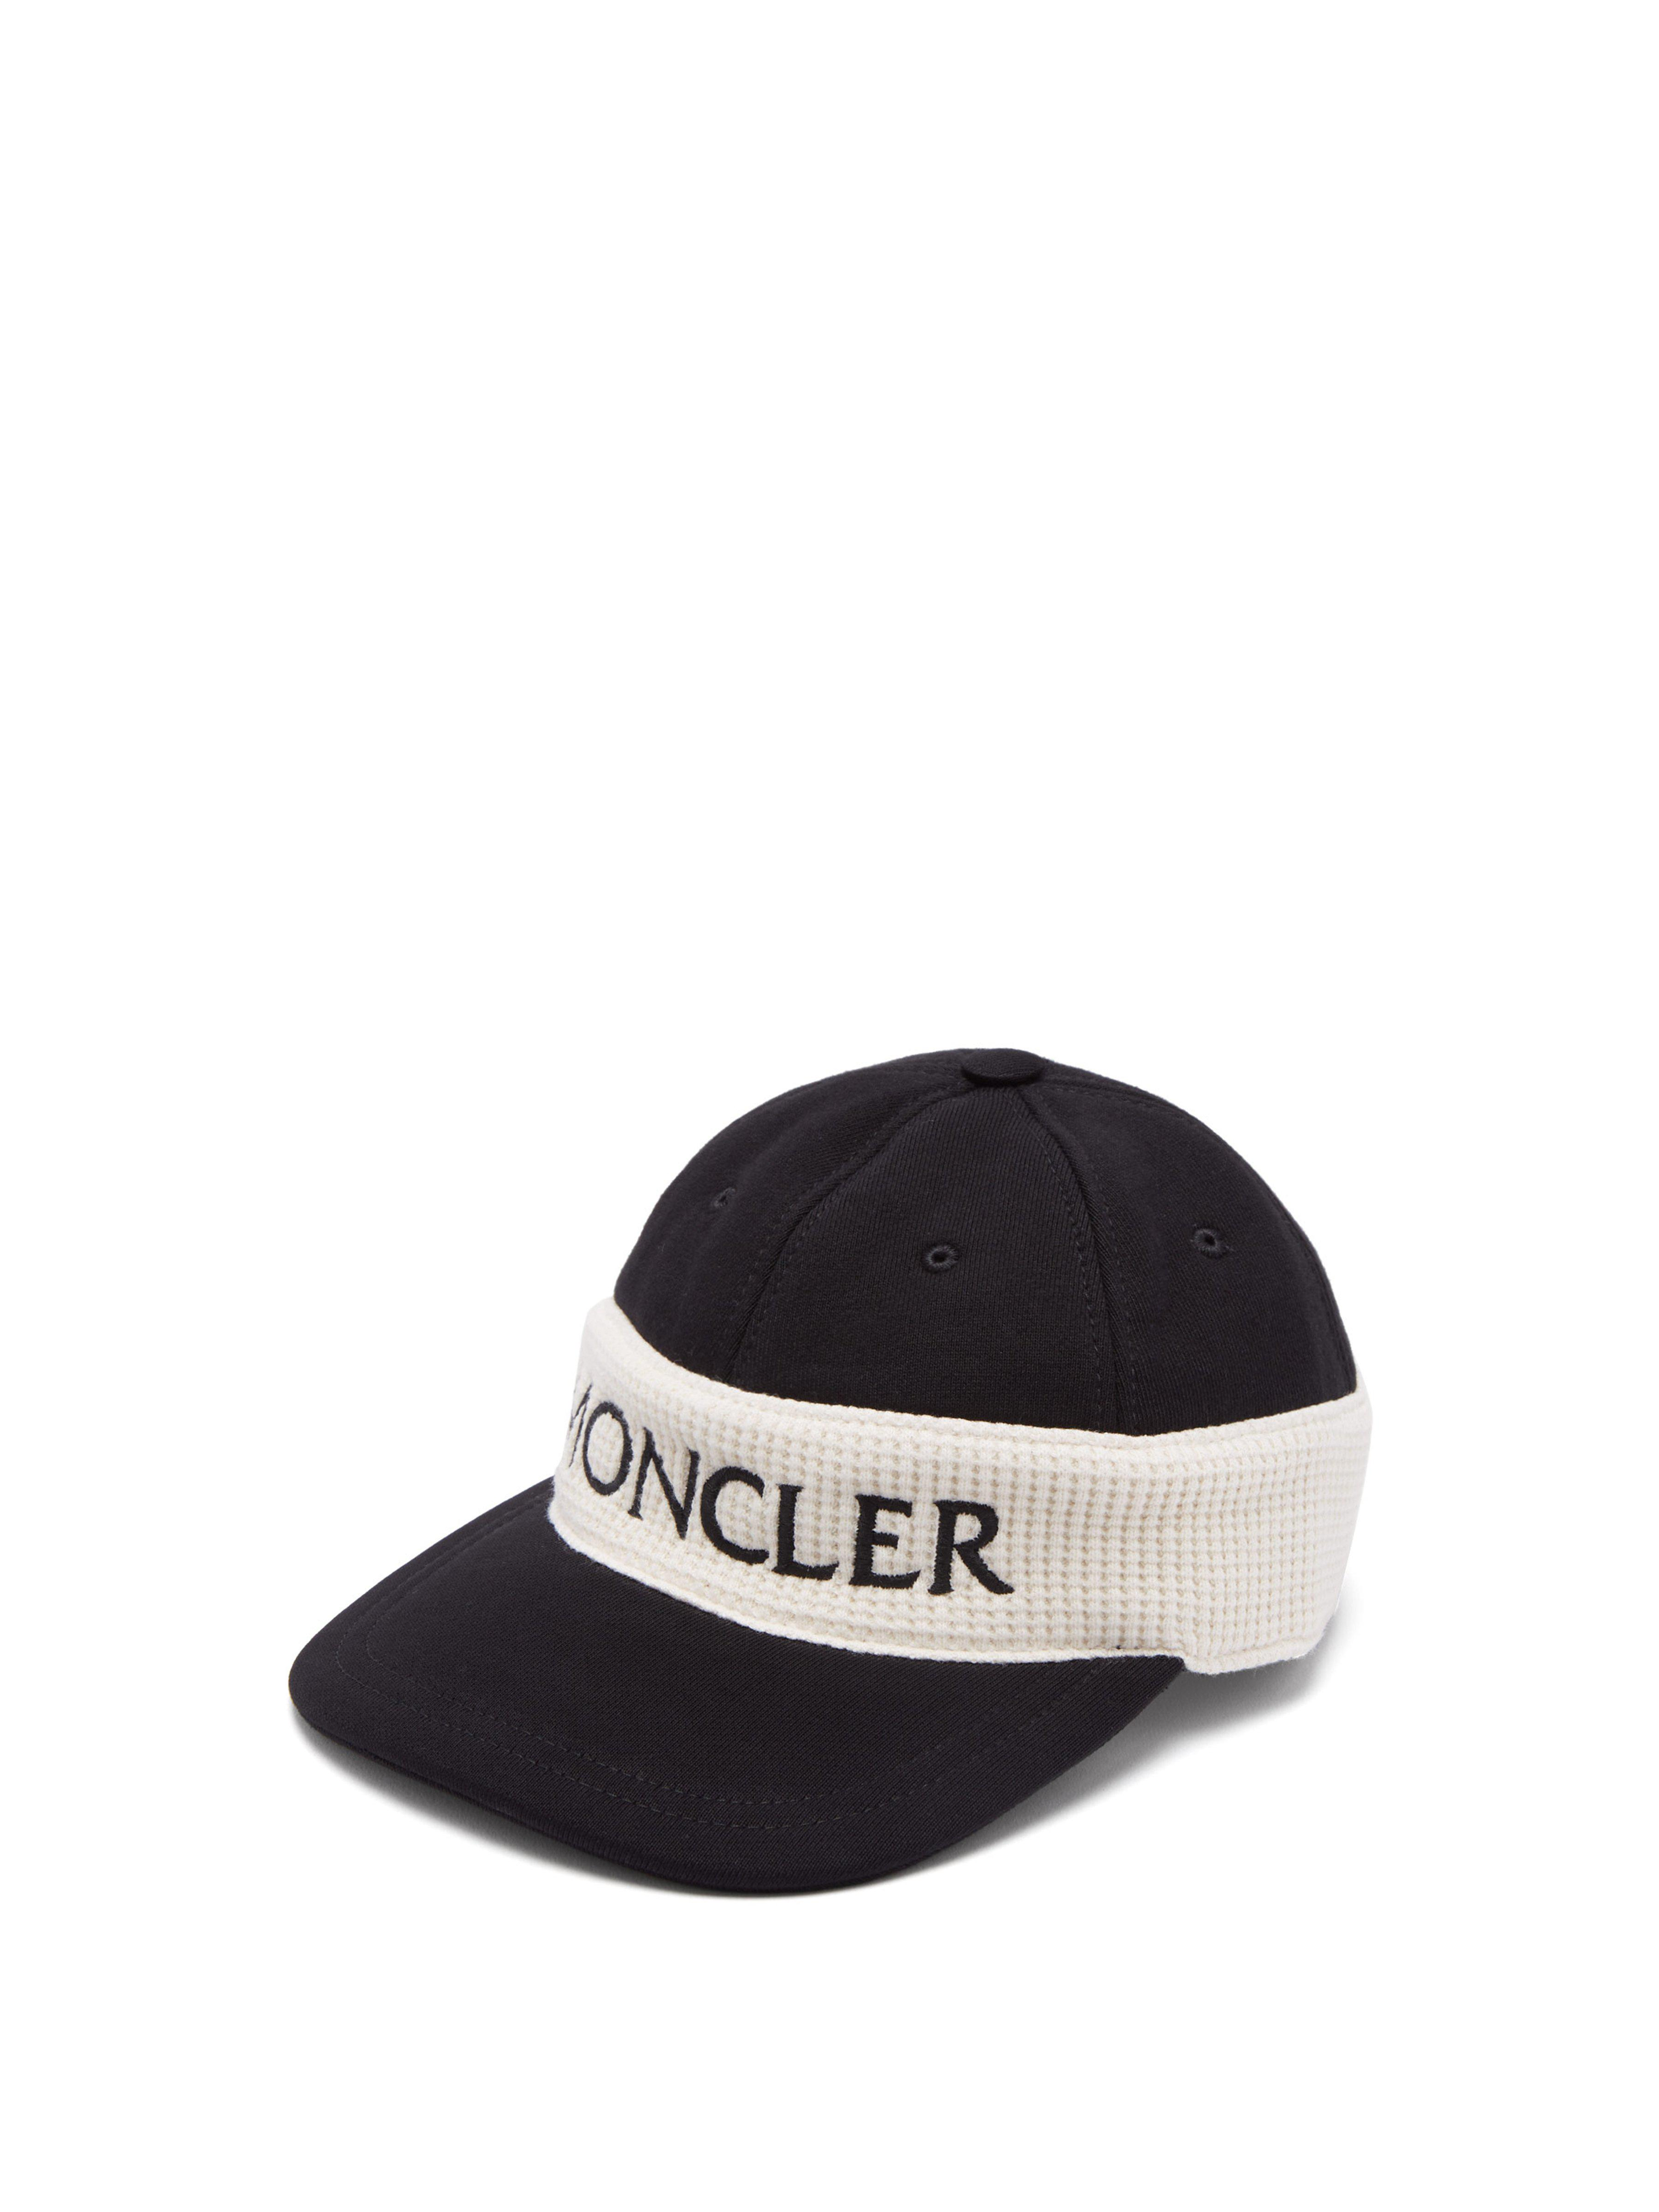 6cd5d60312a Moncler Fitted Logo Embroidered Cotton Cap for Men - Lyst